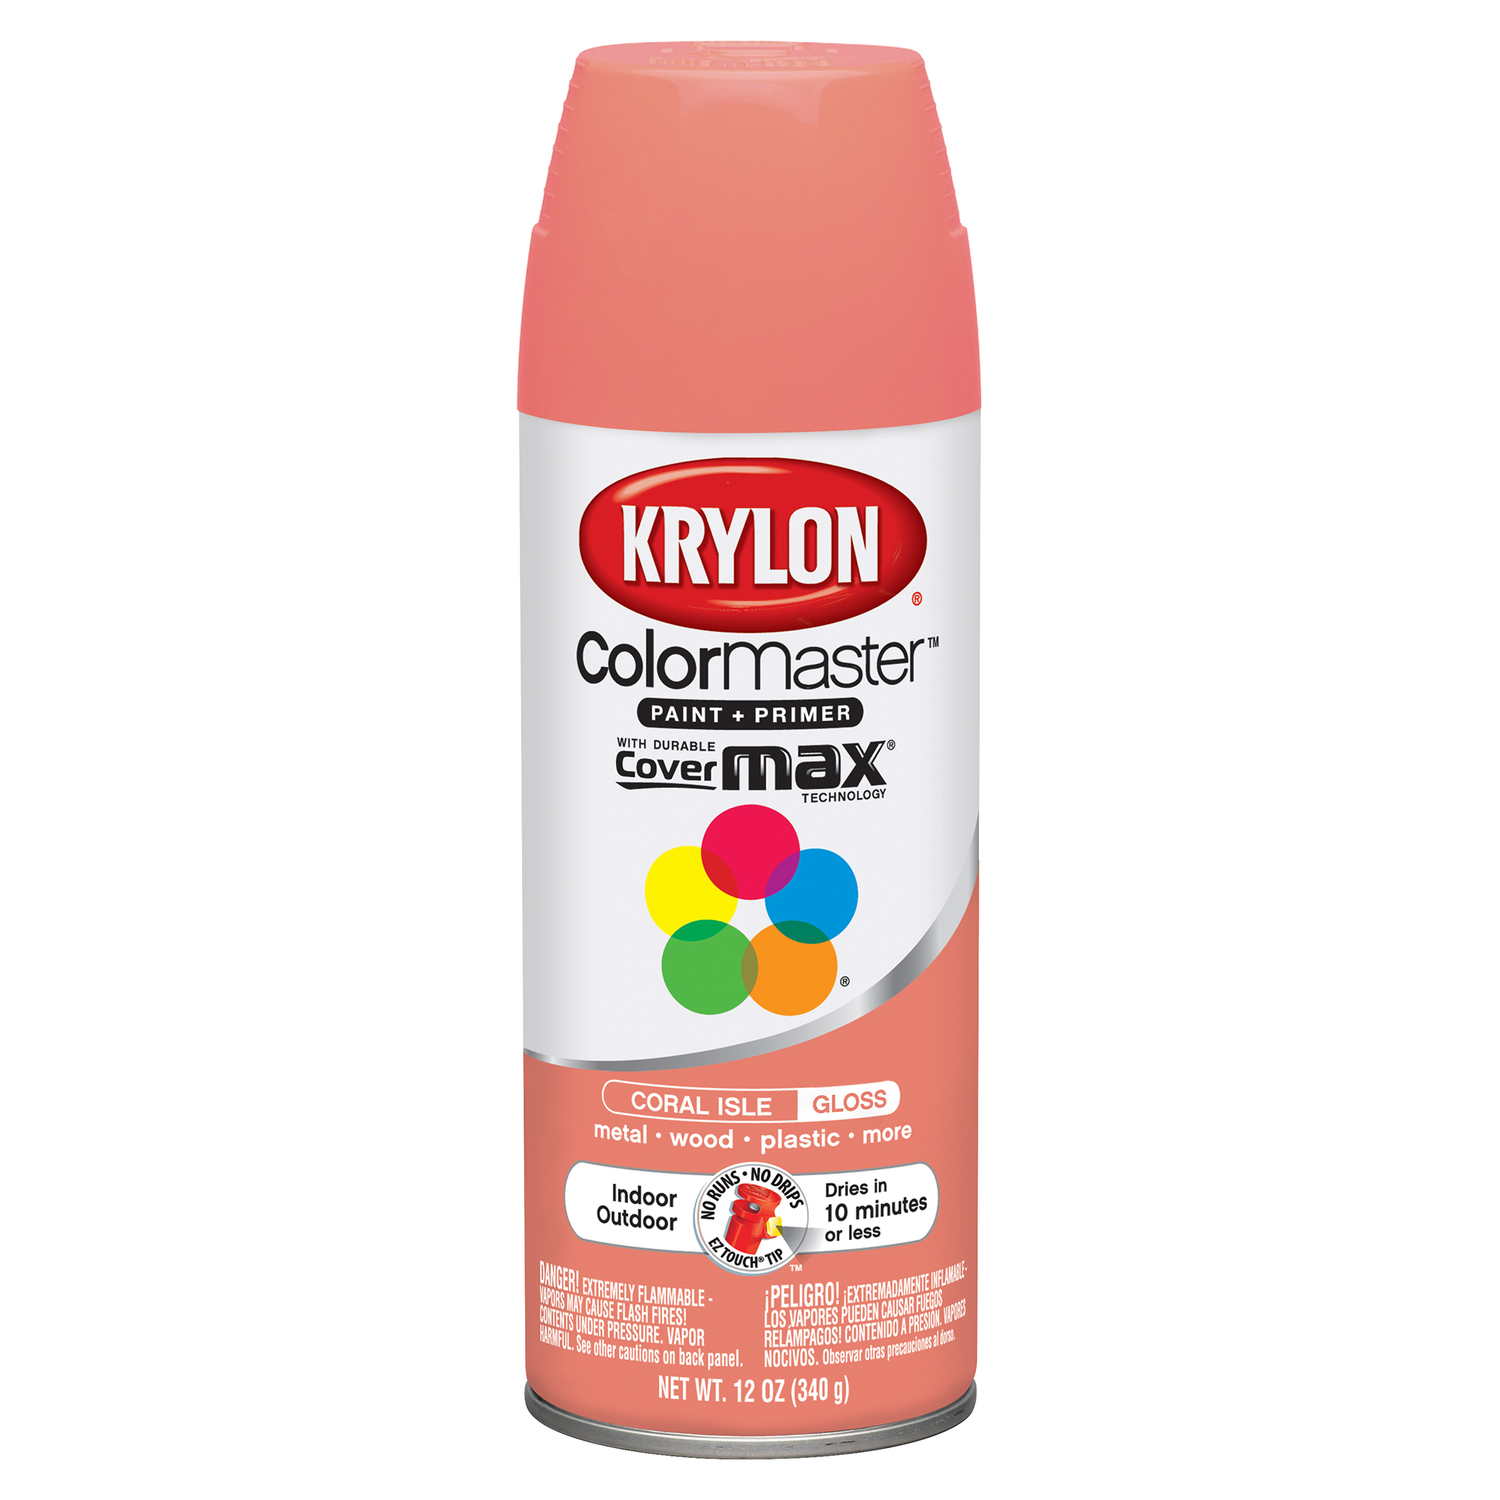 Krylon  ColorMaster  Gloss  Spray Paint  12 oz. Coral Isle